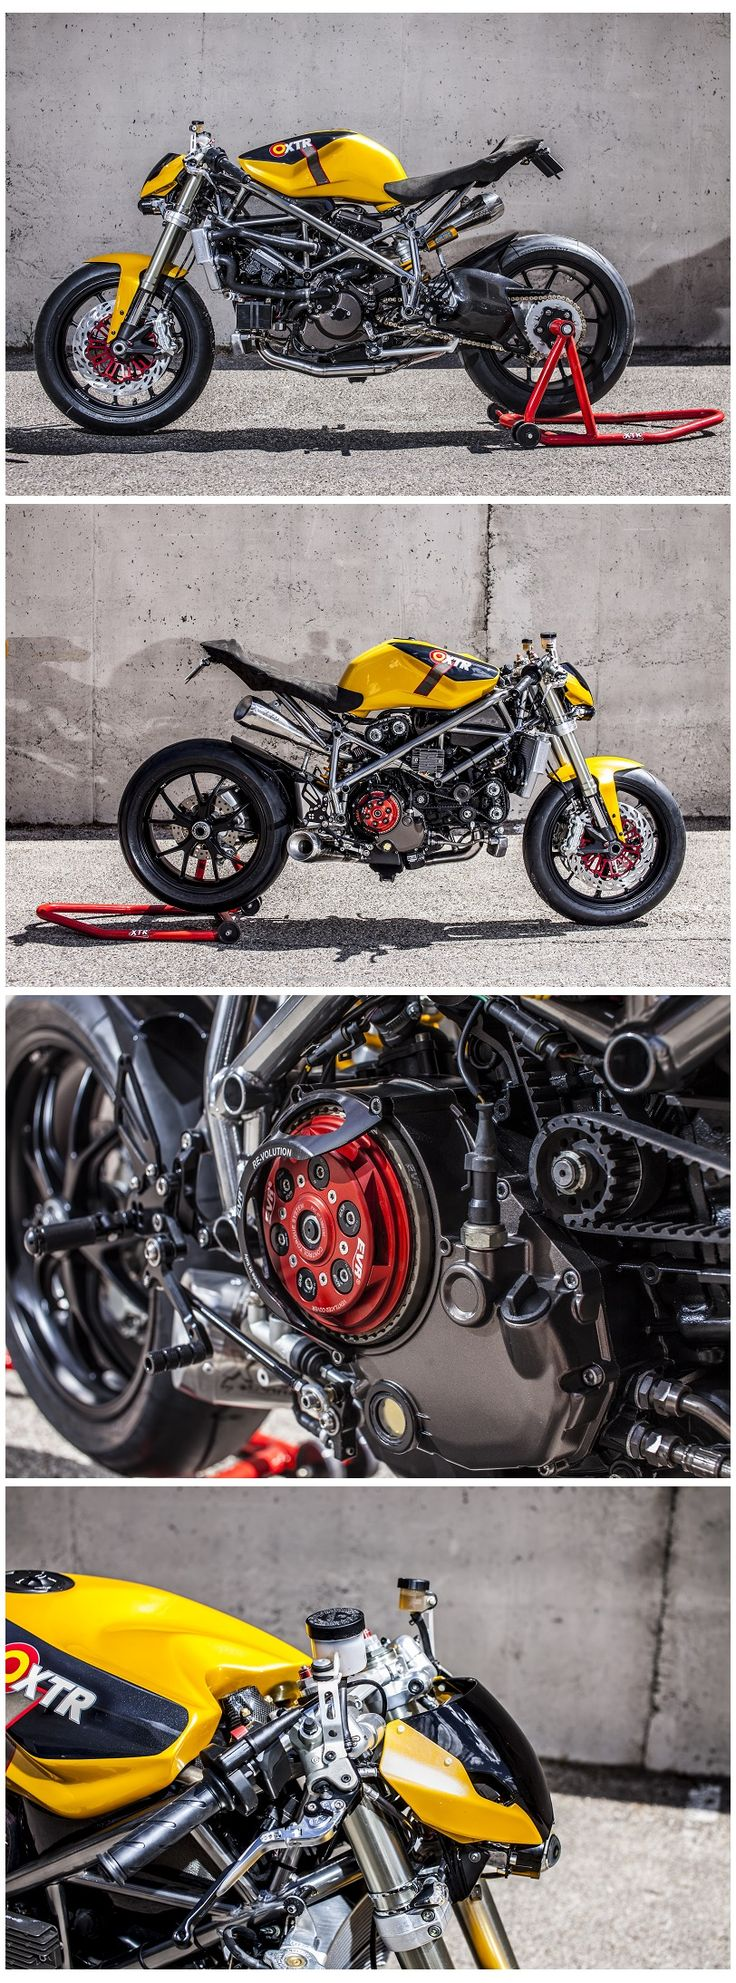 Ducati 848 Streetfighter by XTR Pepo Photos by Cesar Godoy.